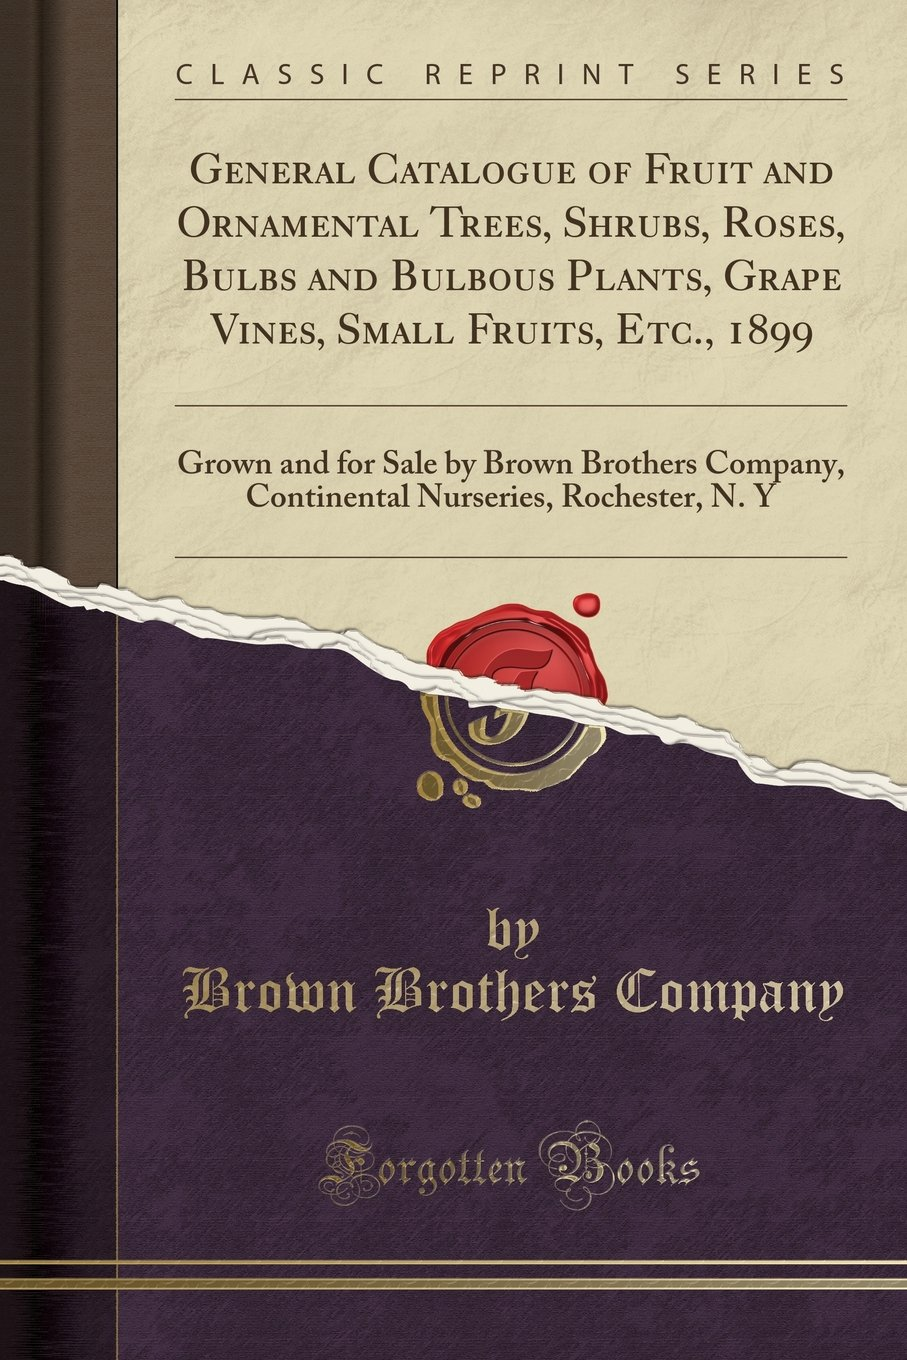 Download General Catalogue of Fruit and Ornamental Trees, Shrubs, Roses, Bulbs and Bulbous Plants, Grape Vines, Small Fruits, Etc., 1899: Grown and for Sale by ... Nurseries, Rochester, N. Y (Classic Reprint) pdf epub